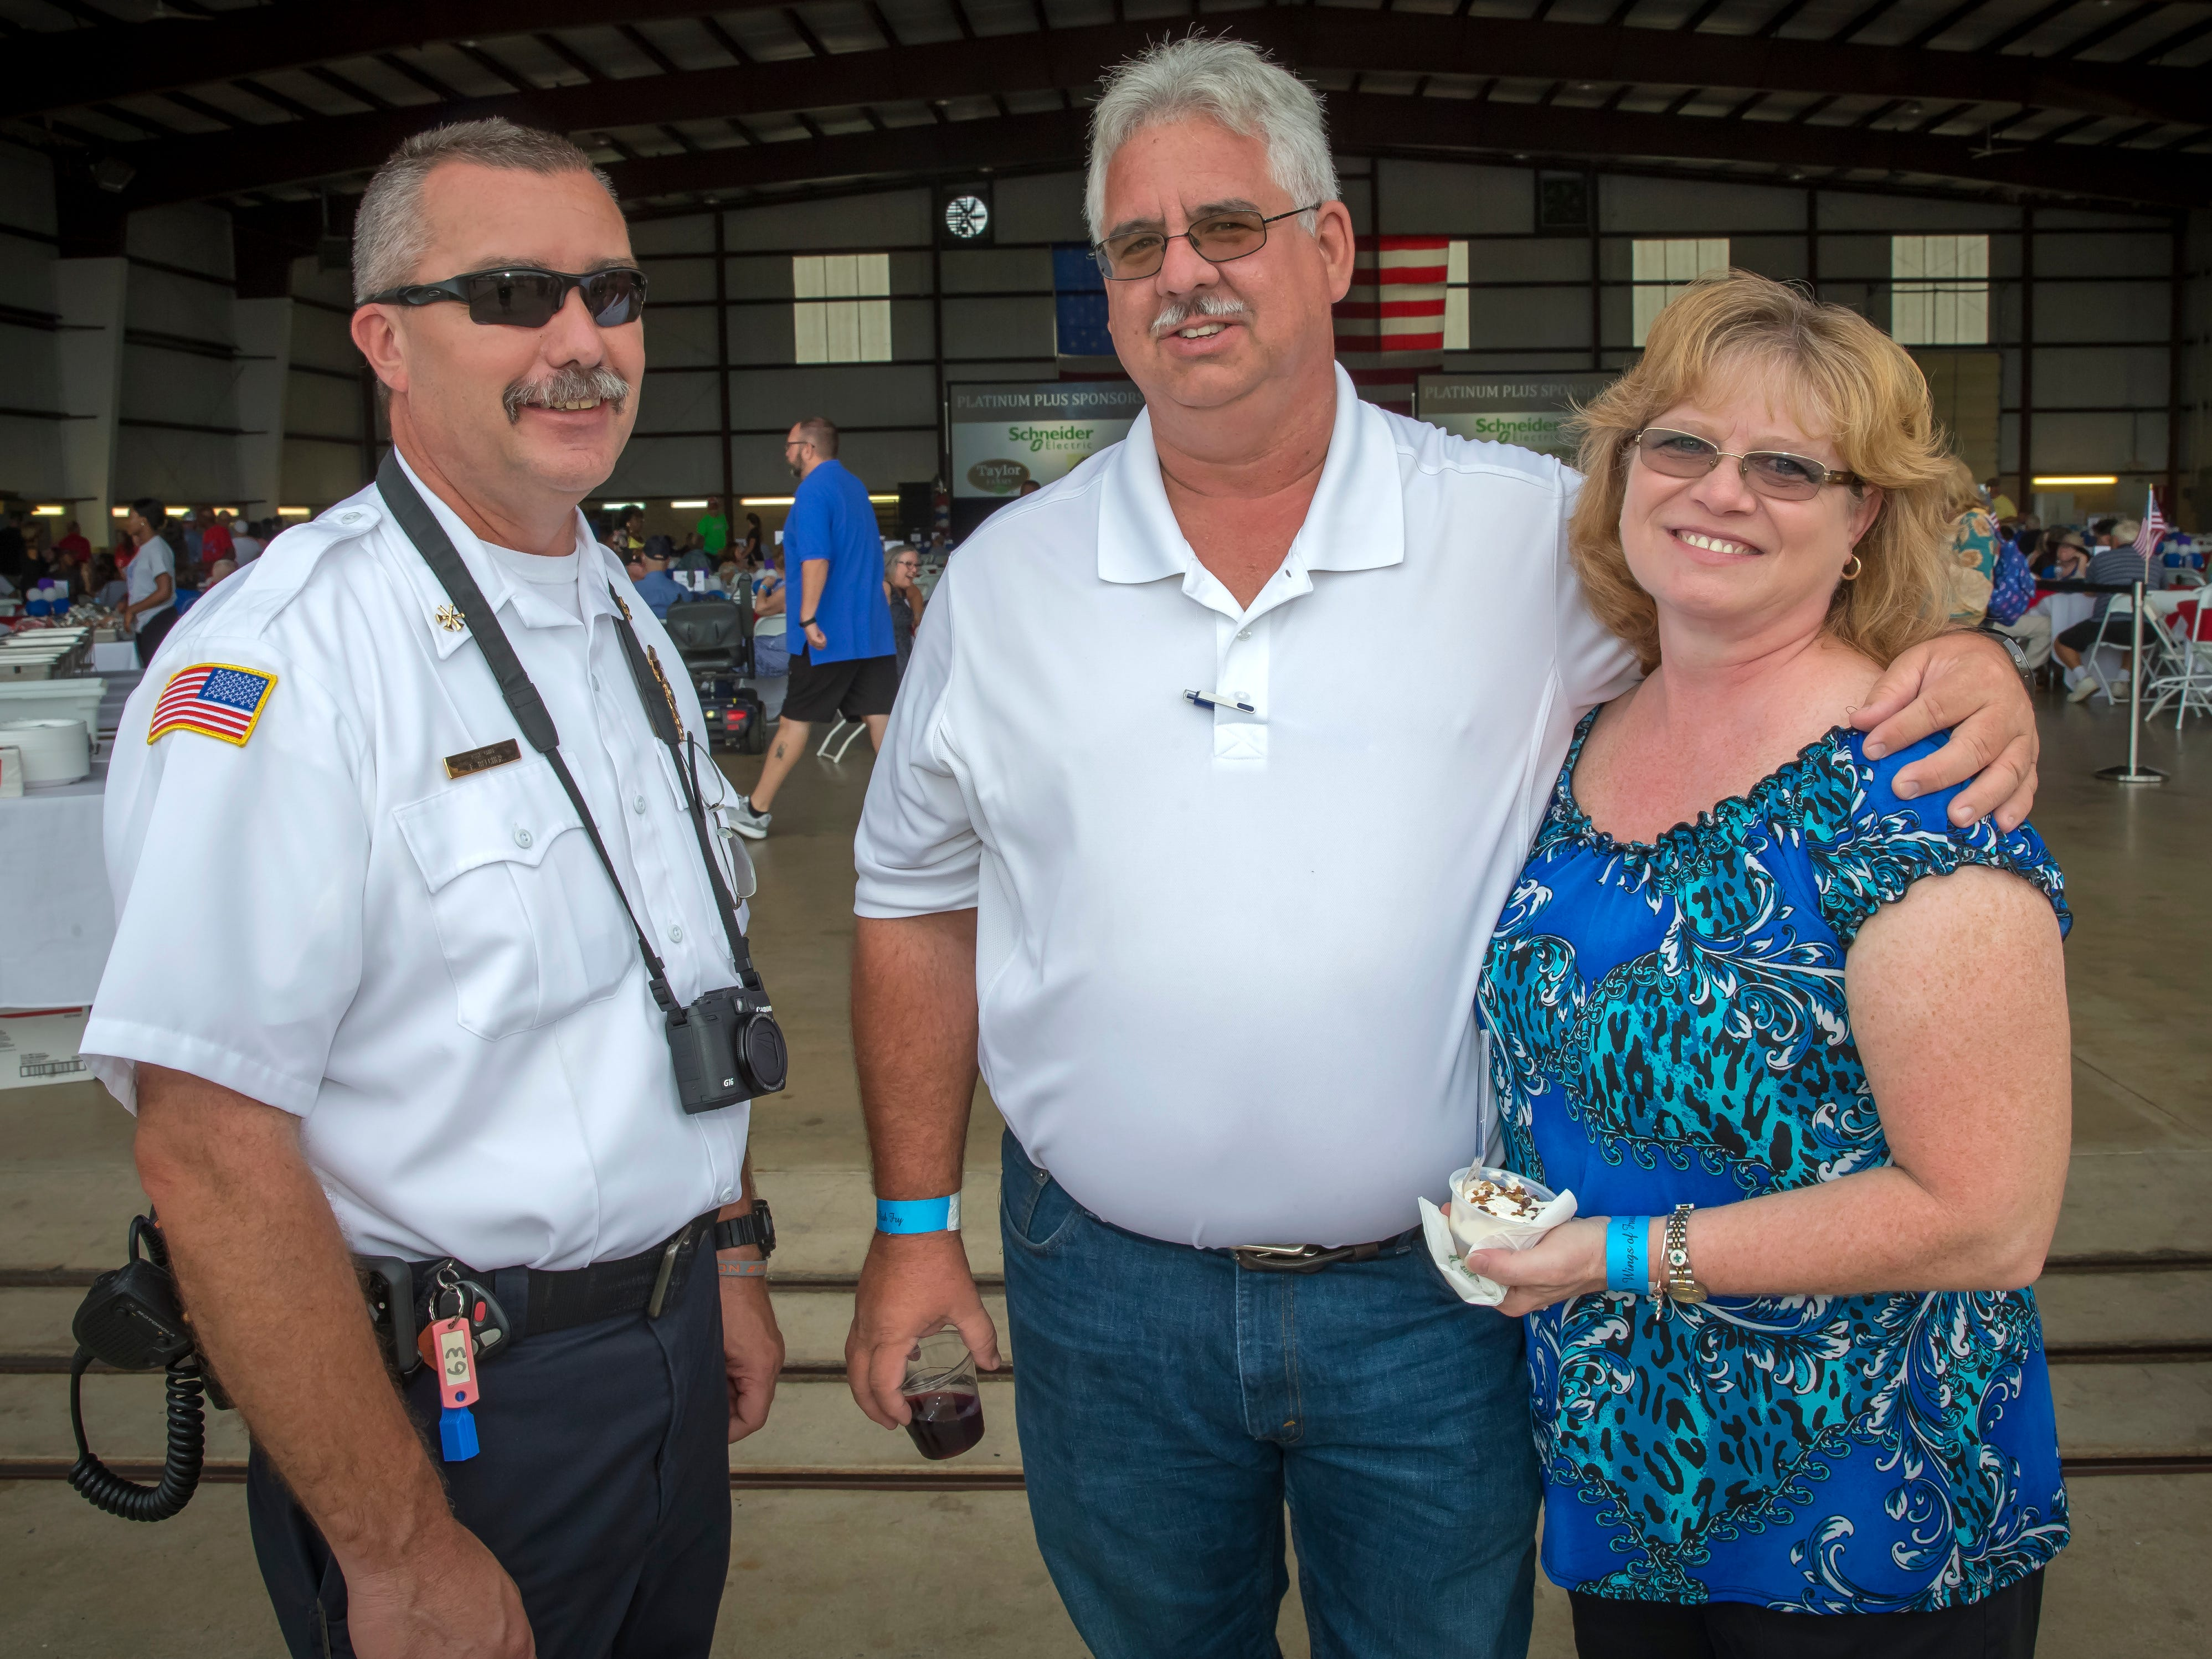 Ferris Belcher, Dana and Jennifer Blair at the Wings of Freedom Fish Fry hosted by Smyrna Rotary Club. The event was held Saturday, Sept. 8, 2018 at the Corporate Flight Management Hangar at Smyrna Airport.